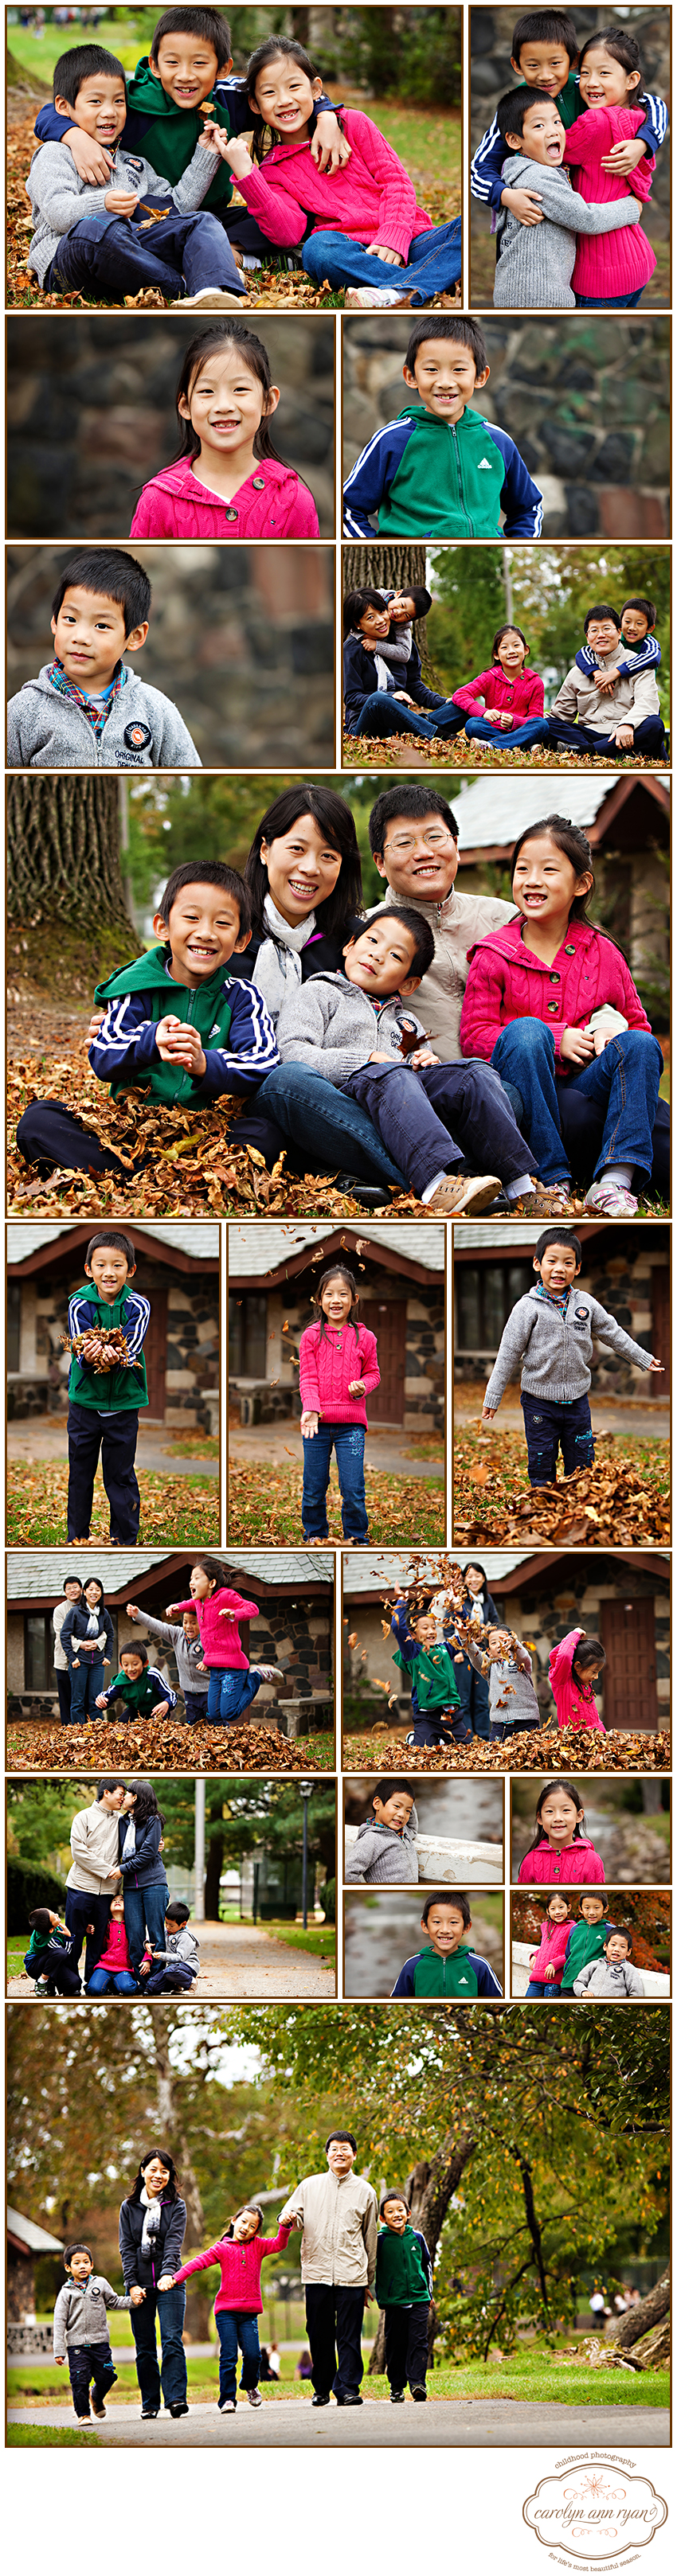 Marvin, NC photographer Carolyn Ann Ryan captures Fall Family portraits